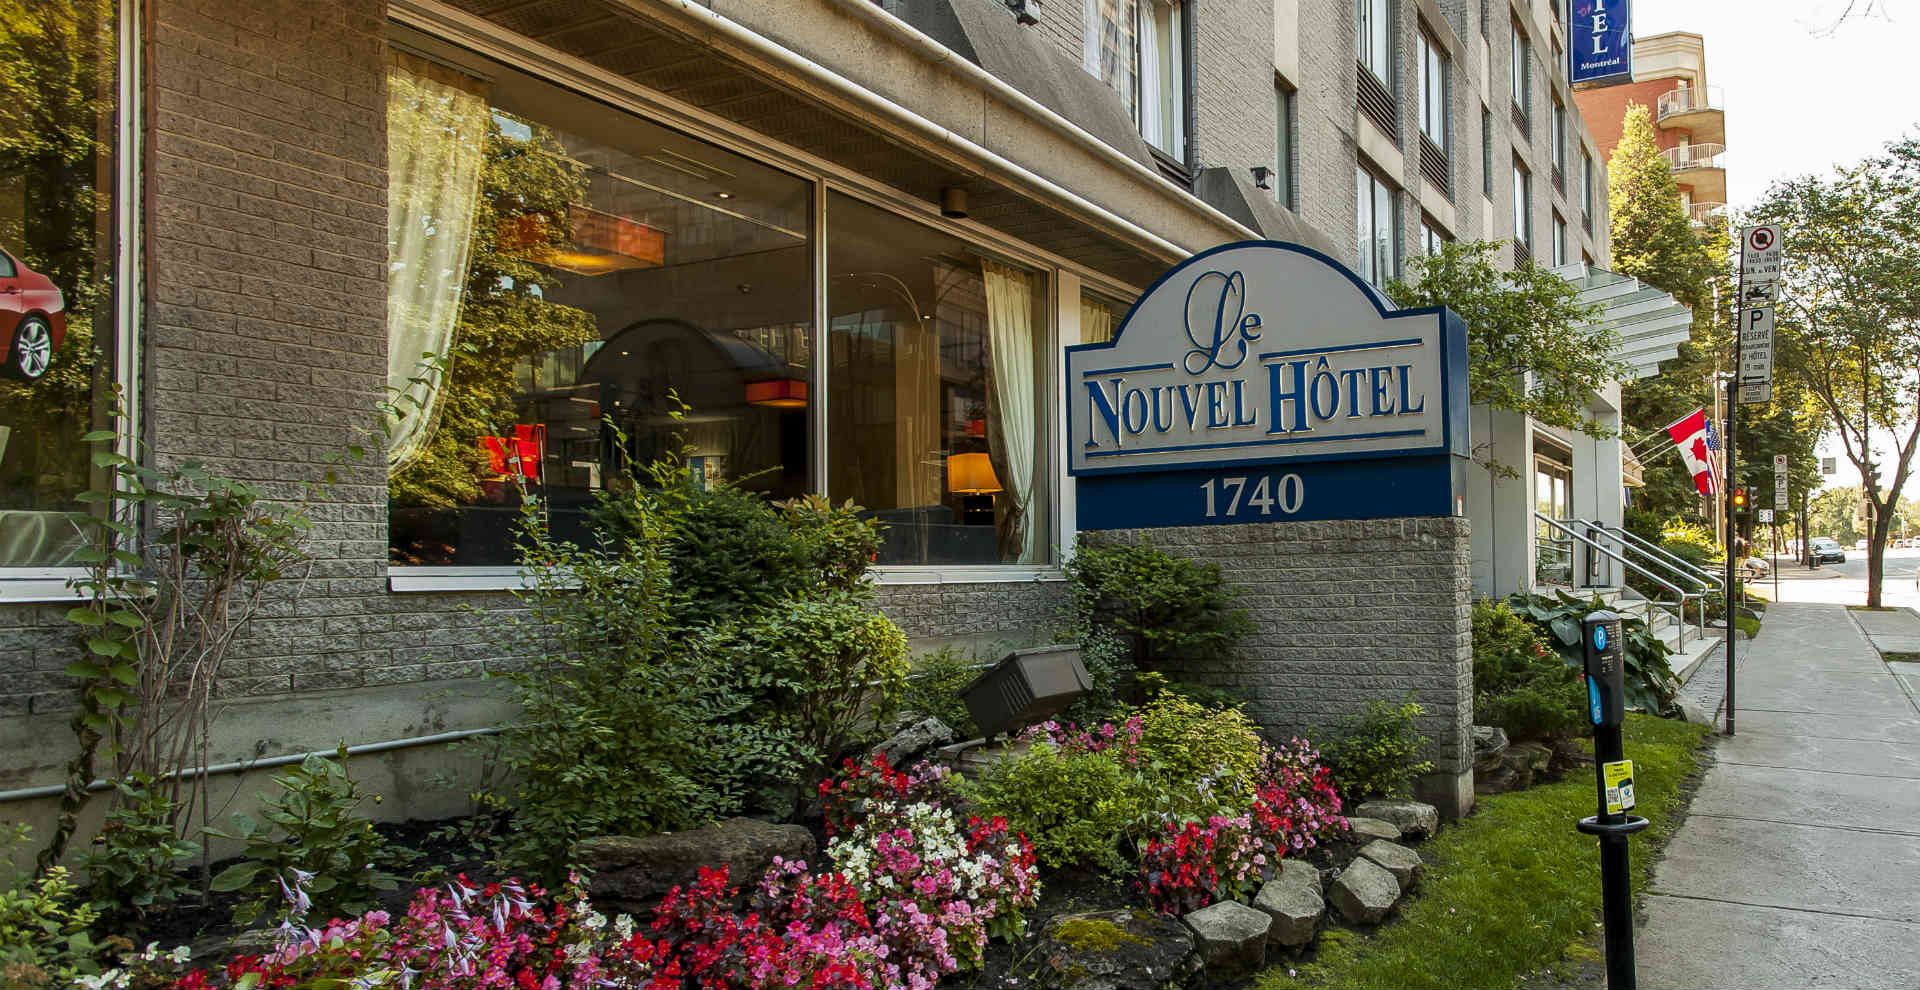 Hotel Exterior of Le Nouvel Hotel & Spa